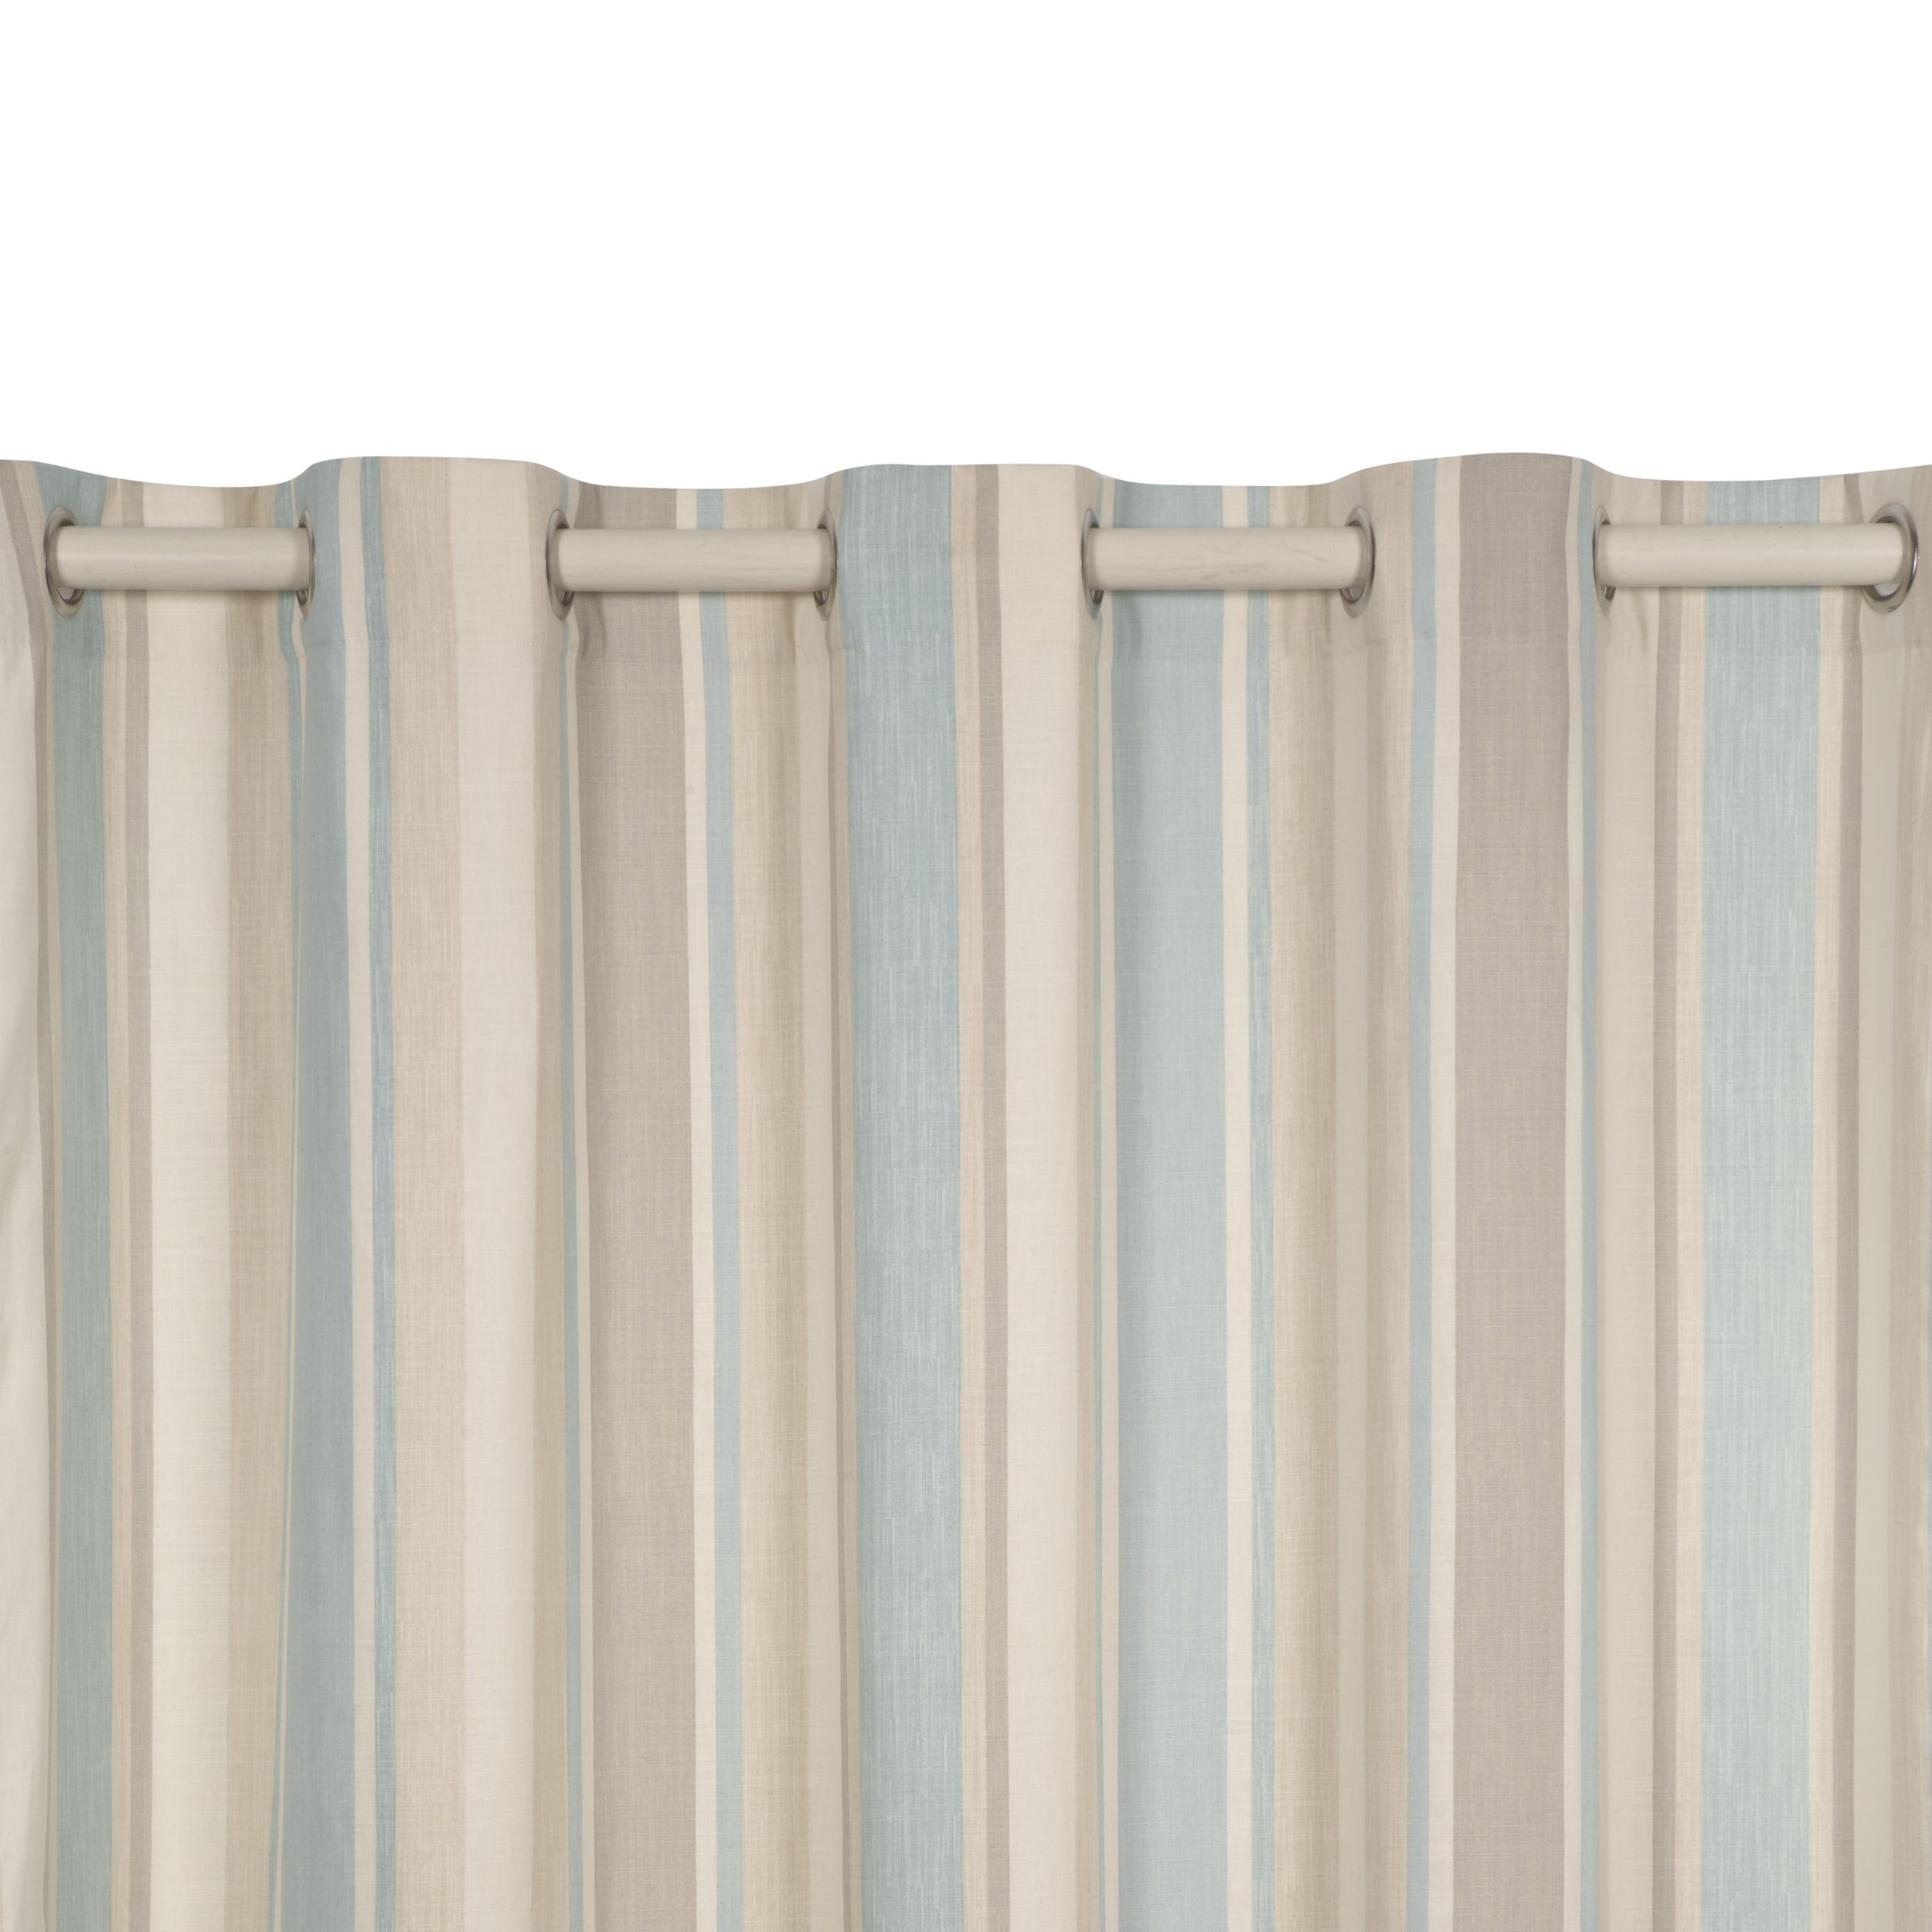 Awning Stripe Eyelet Ready Made Curtains 175 Curtains